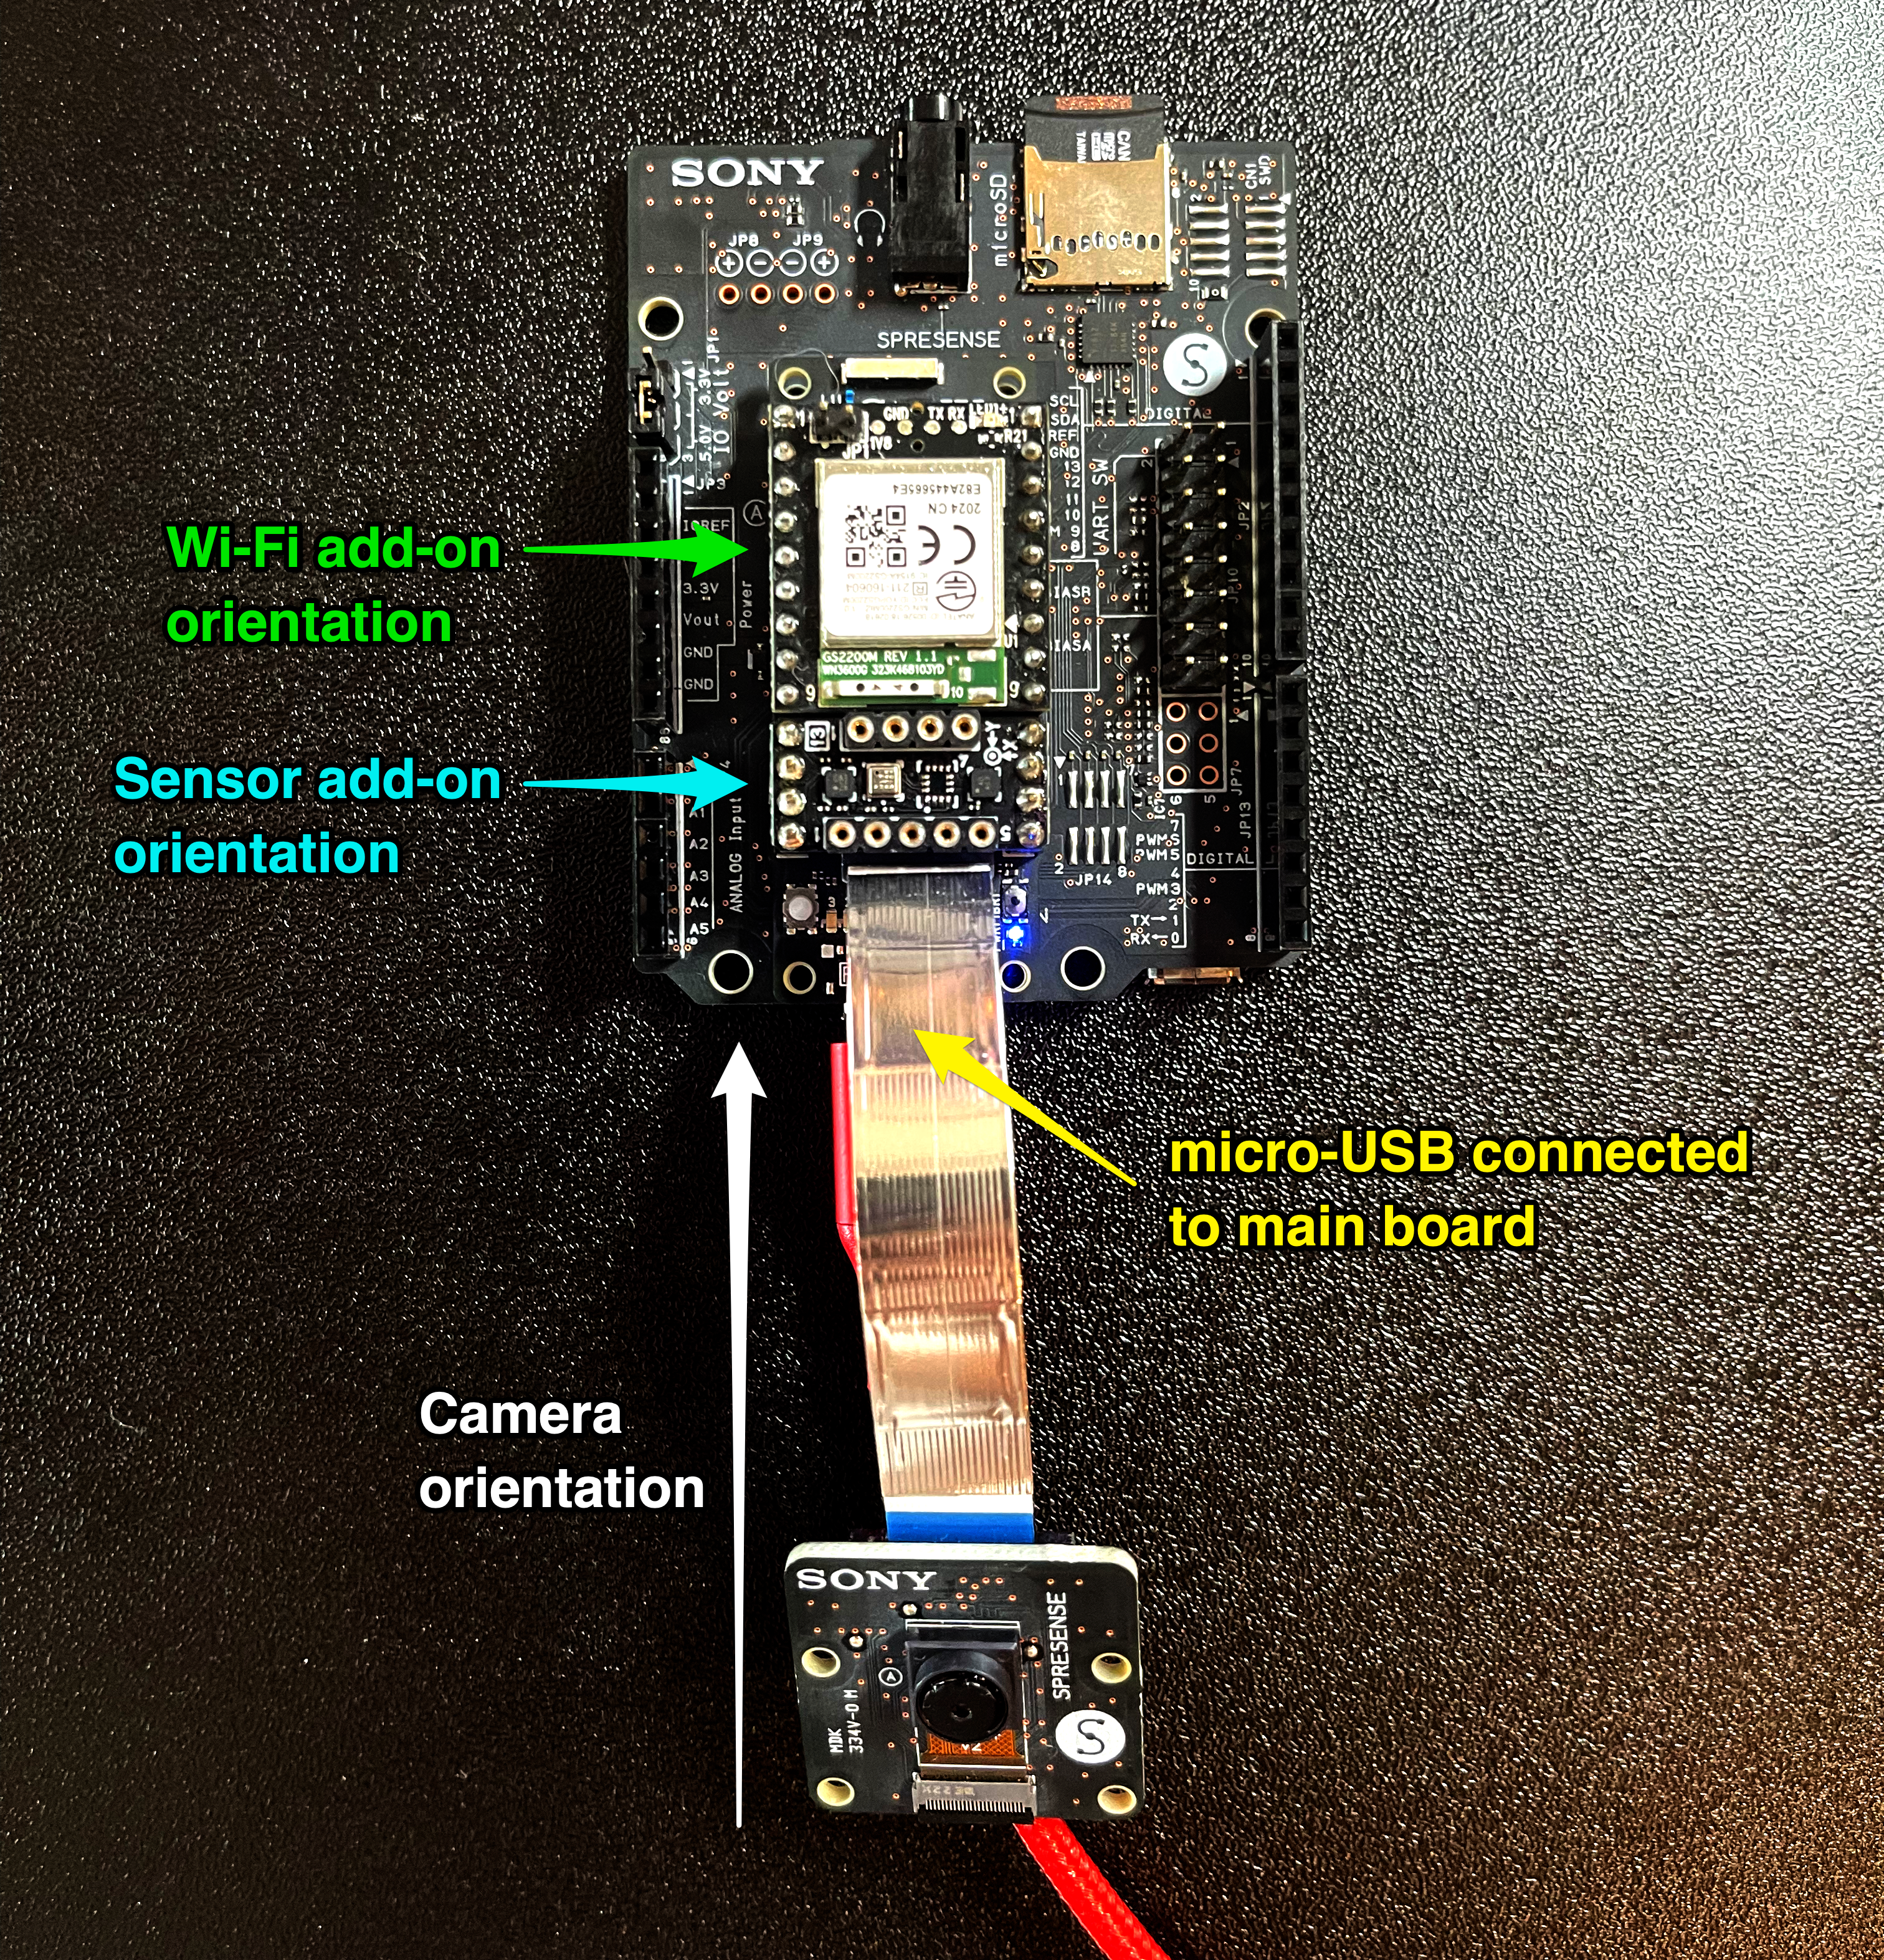 Spresense main board with attached camera, sensor add-on, Wi-Fi add-on, and extension board.